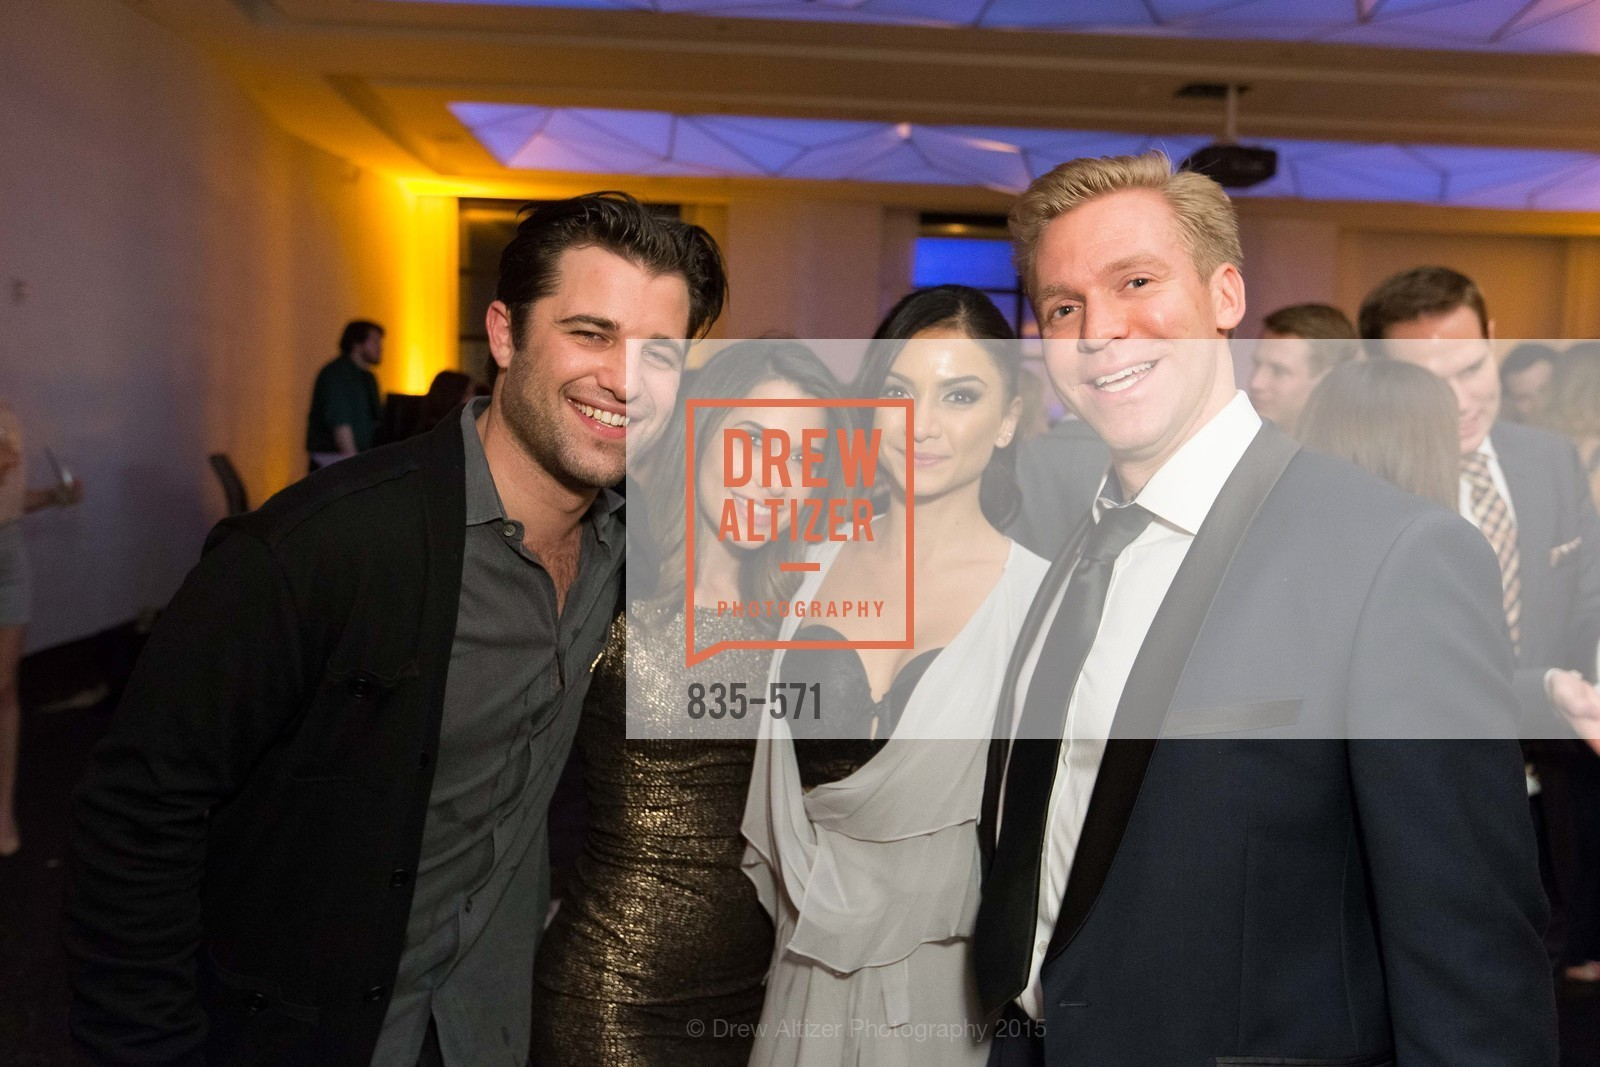 Michael Reyes, Mari Saleh, Tara Dolonazar, Tristan Pikes, The 10th Annual San Francisco Social, W Hotel. 181 3rd St, November 21st, 2015,Drew Altizer, Drew Altizer Photography, full-service agency, private events, San Francisco photographer, photographer california